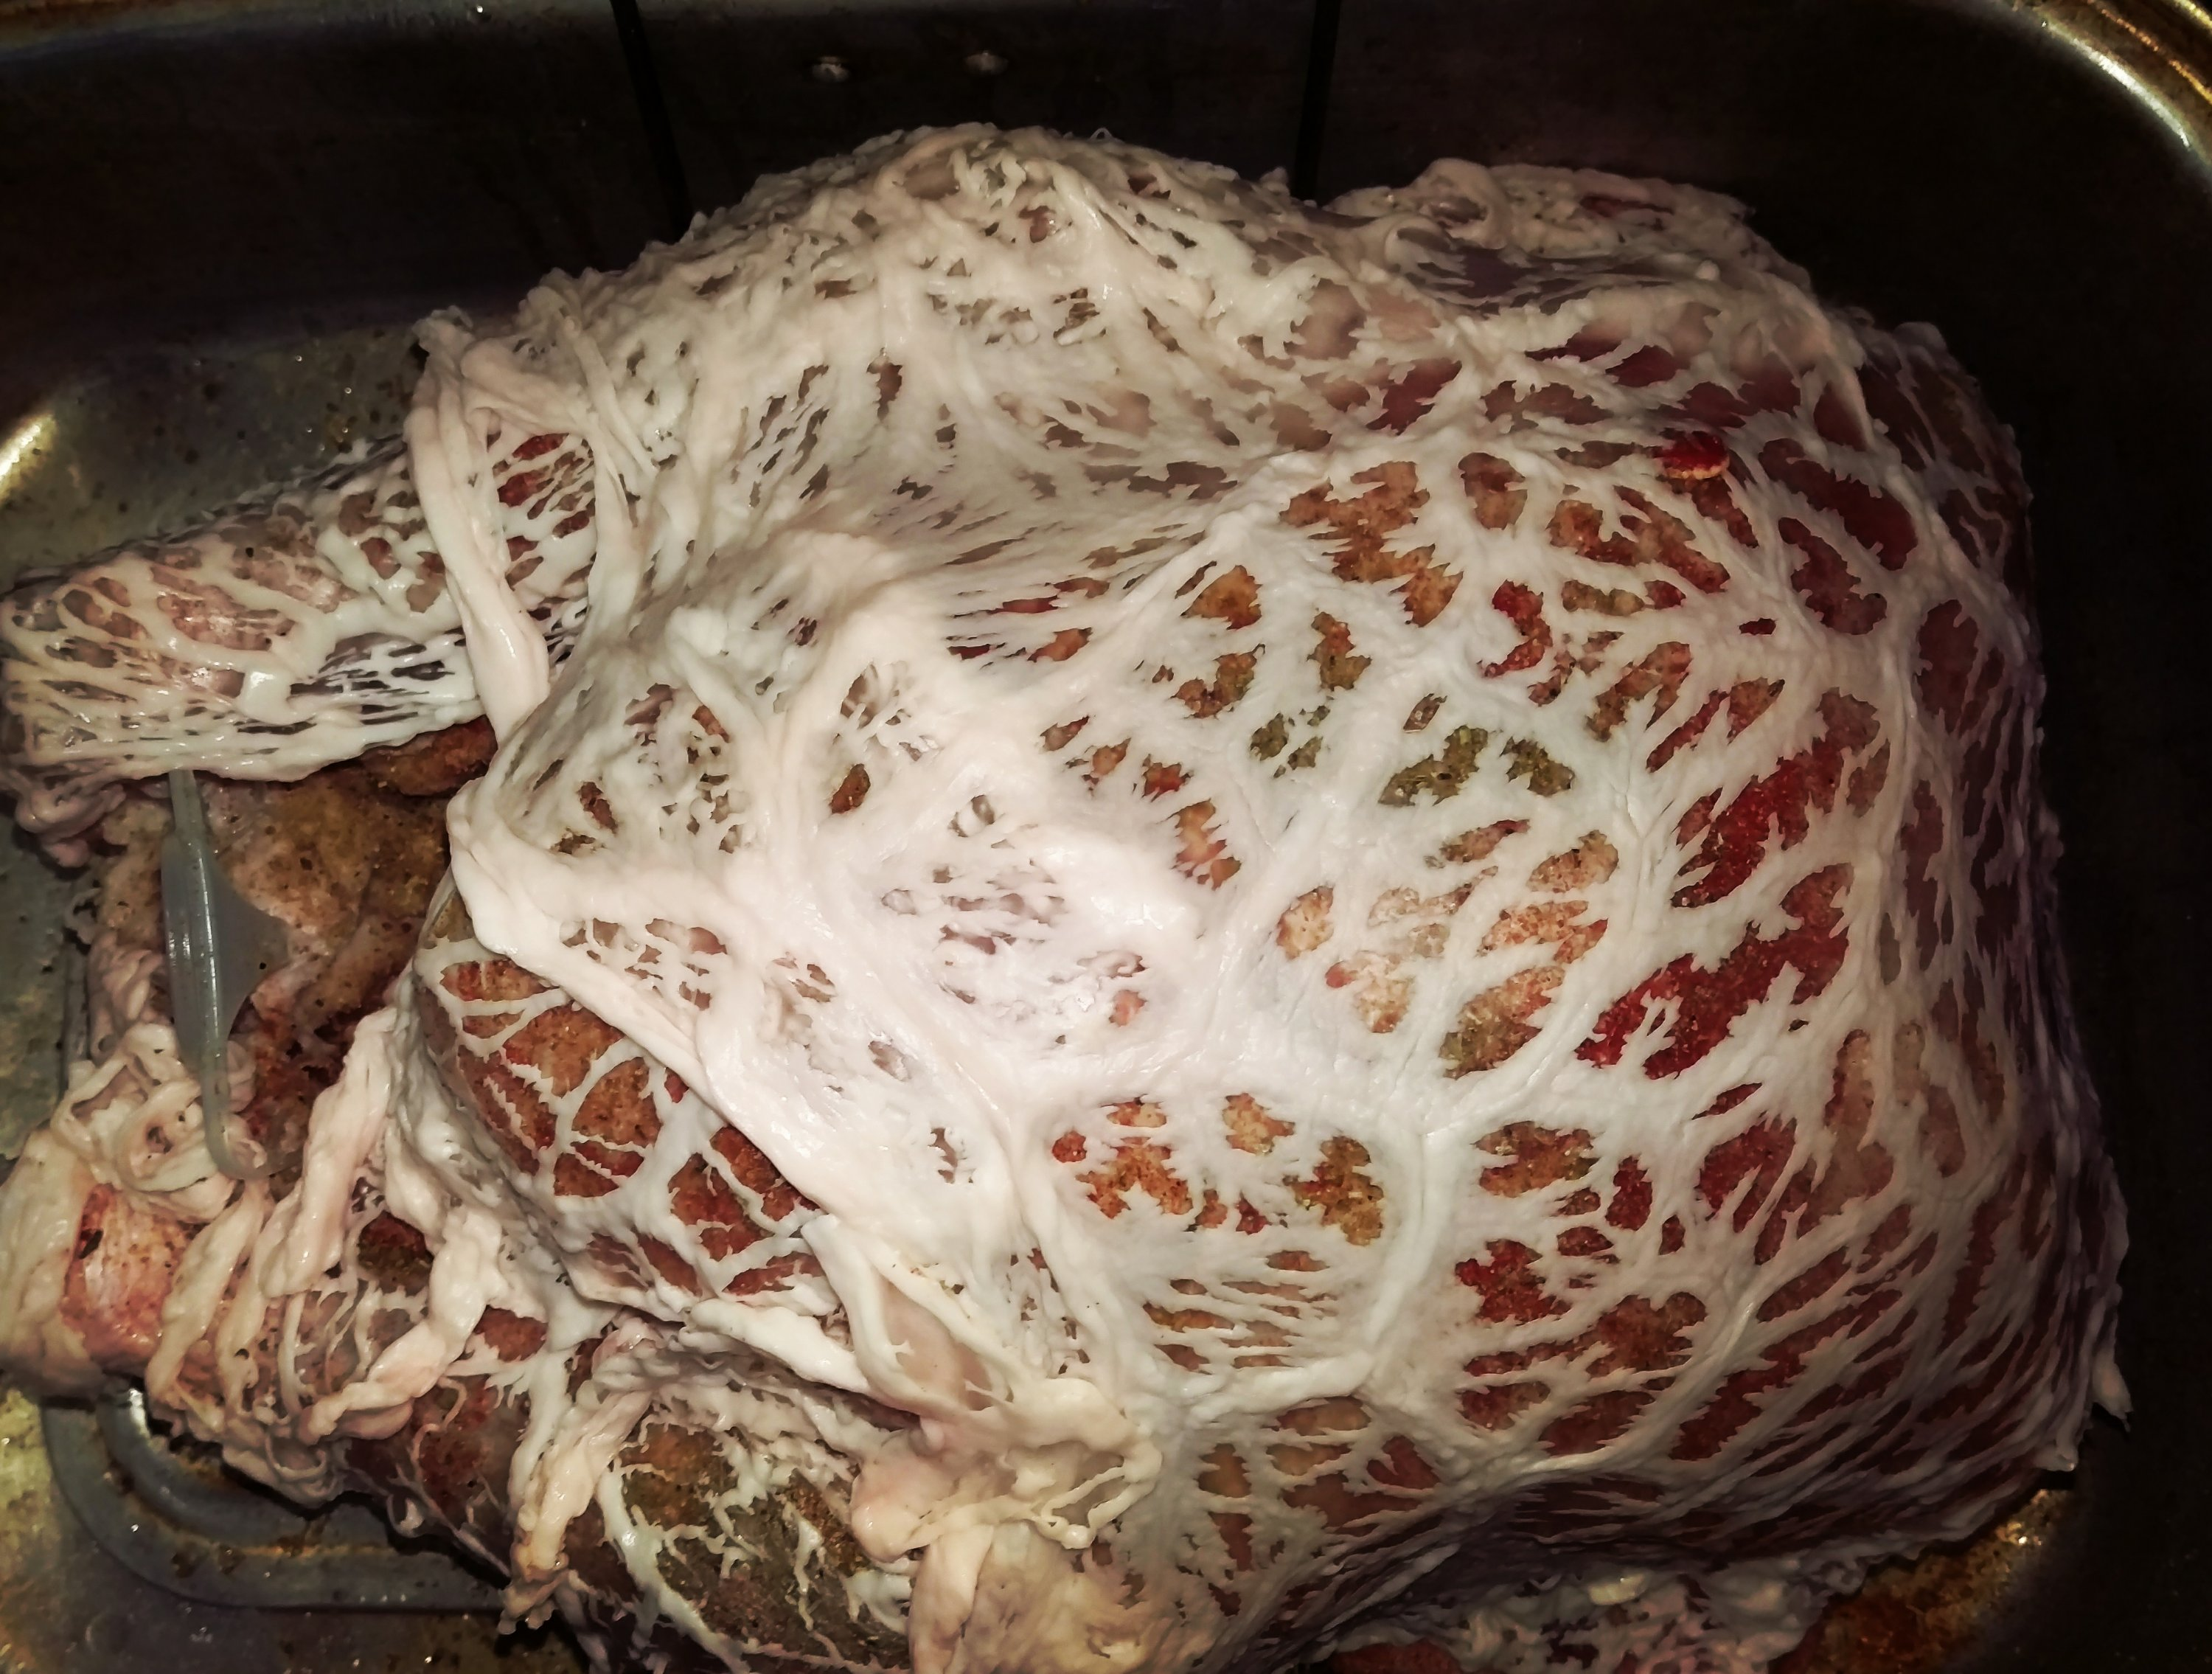 Turkey in Caul Fat